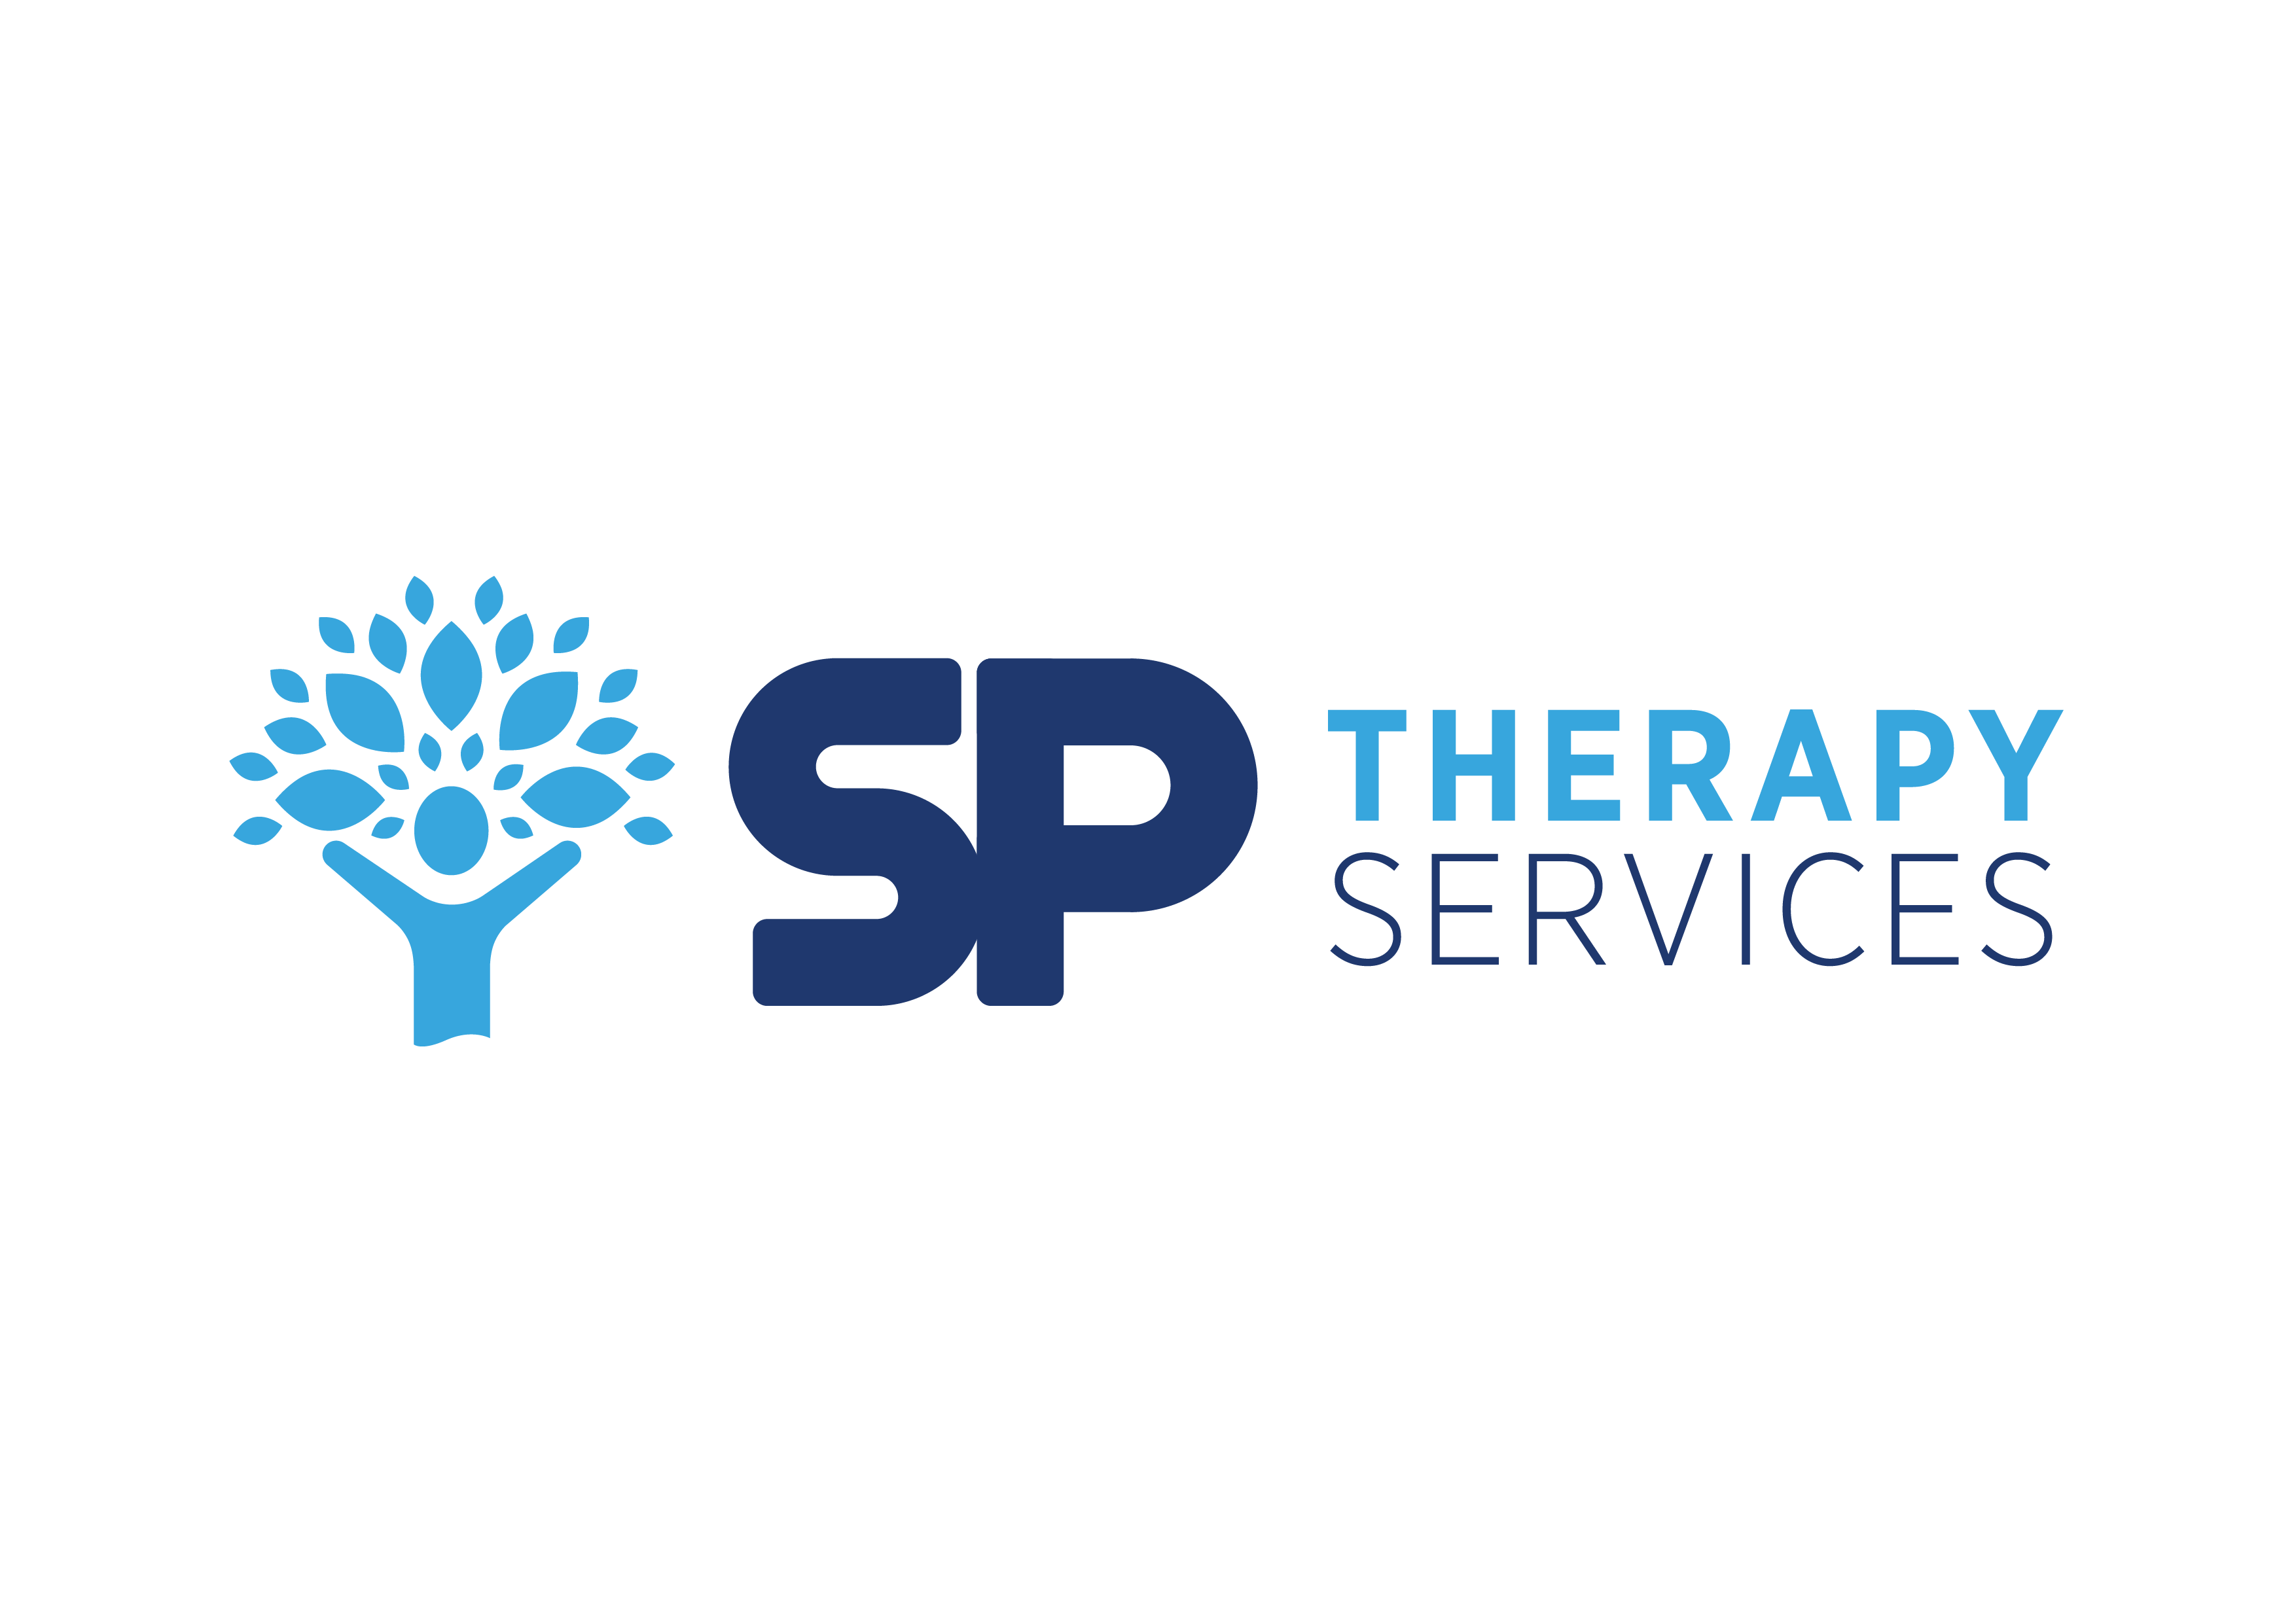 SP Therapy Services Logo